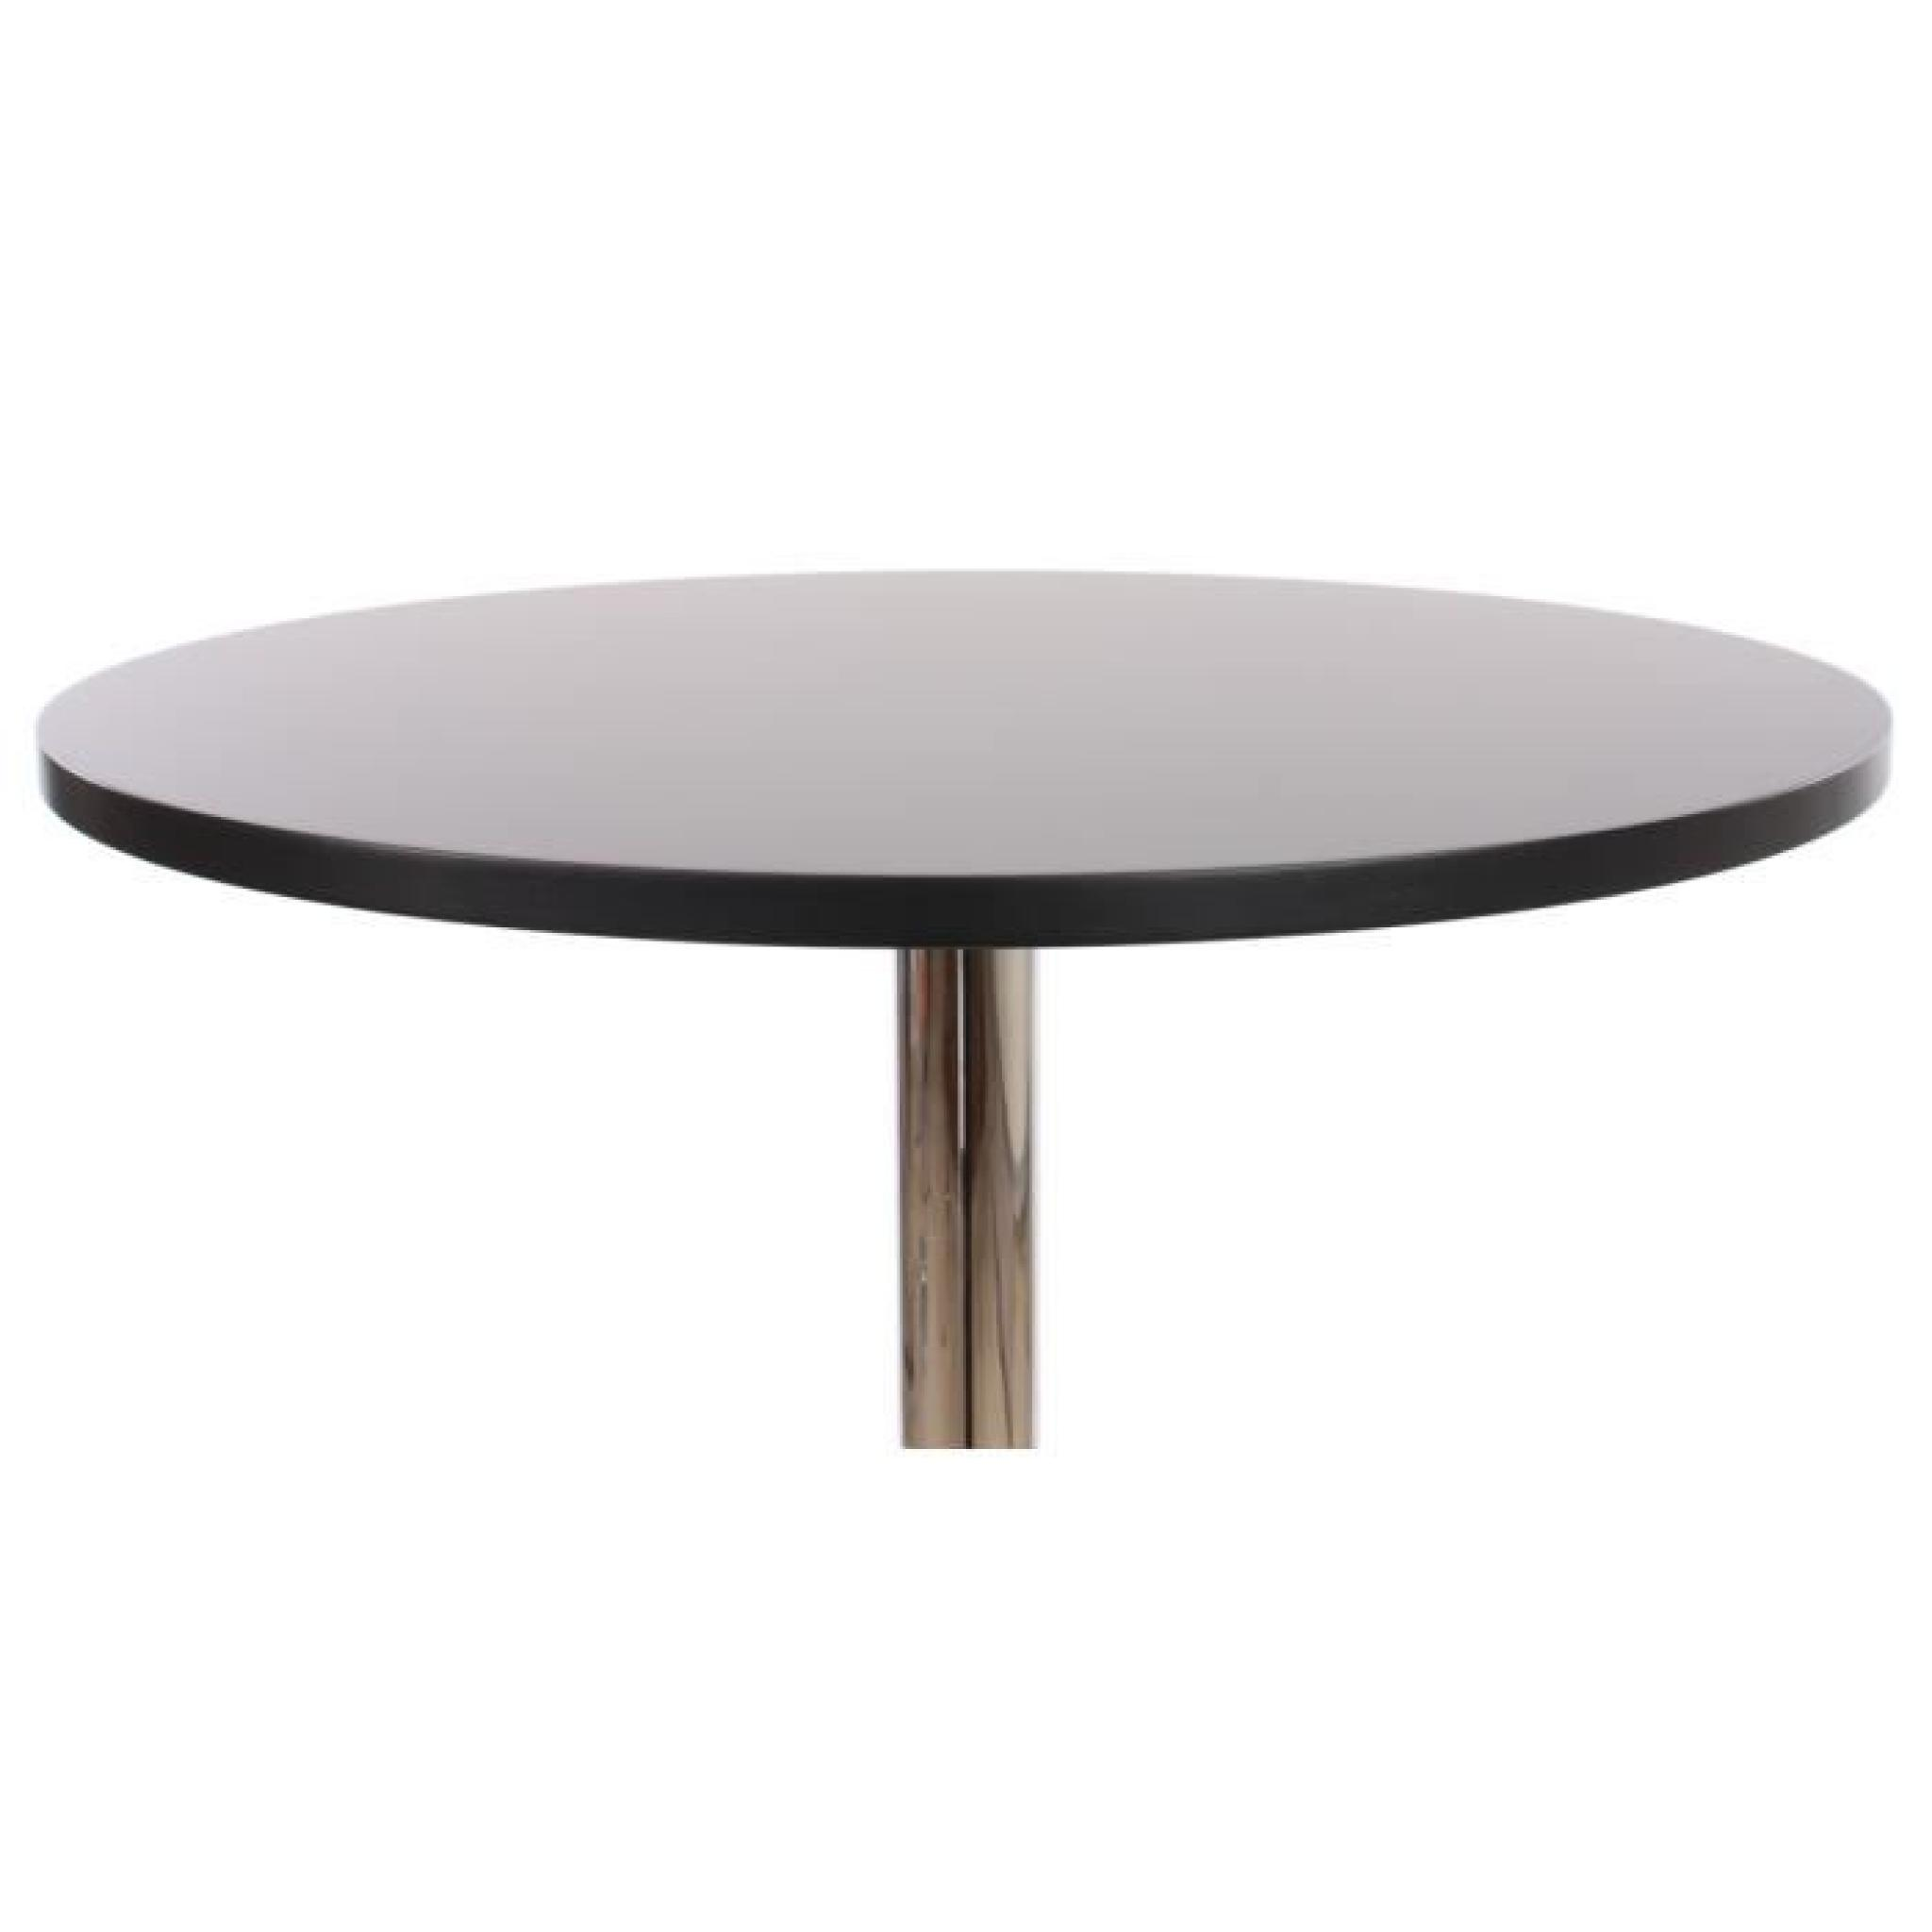 Table De Bar Haute Pas Cher Table De Bar Table Haute Bari Ronde Avec Repose Pied